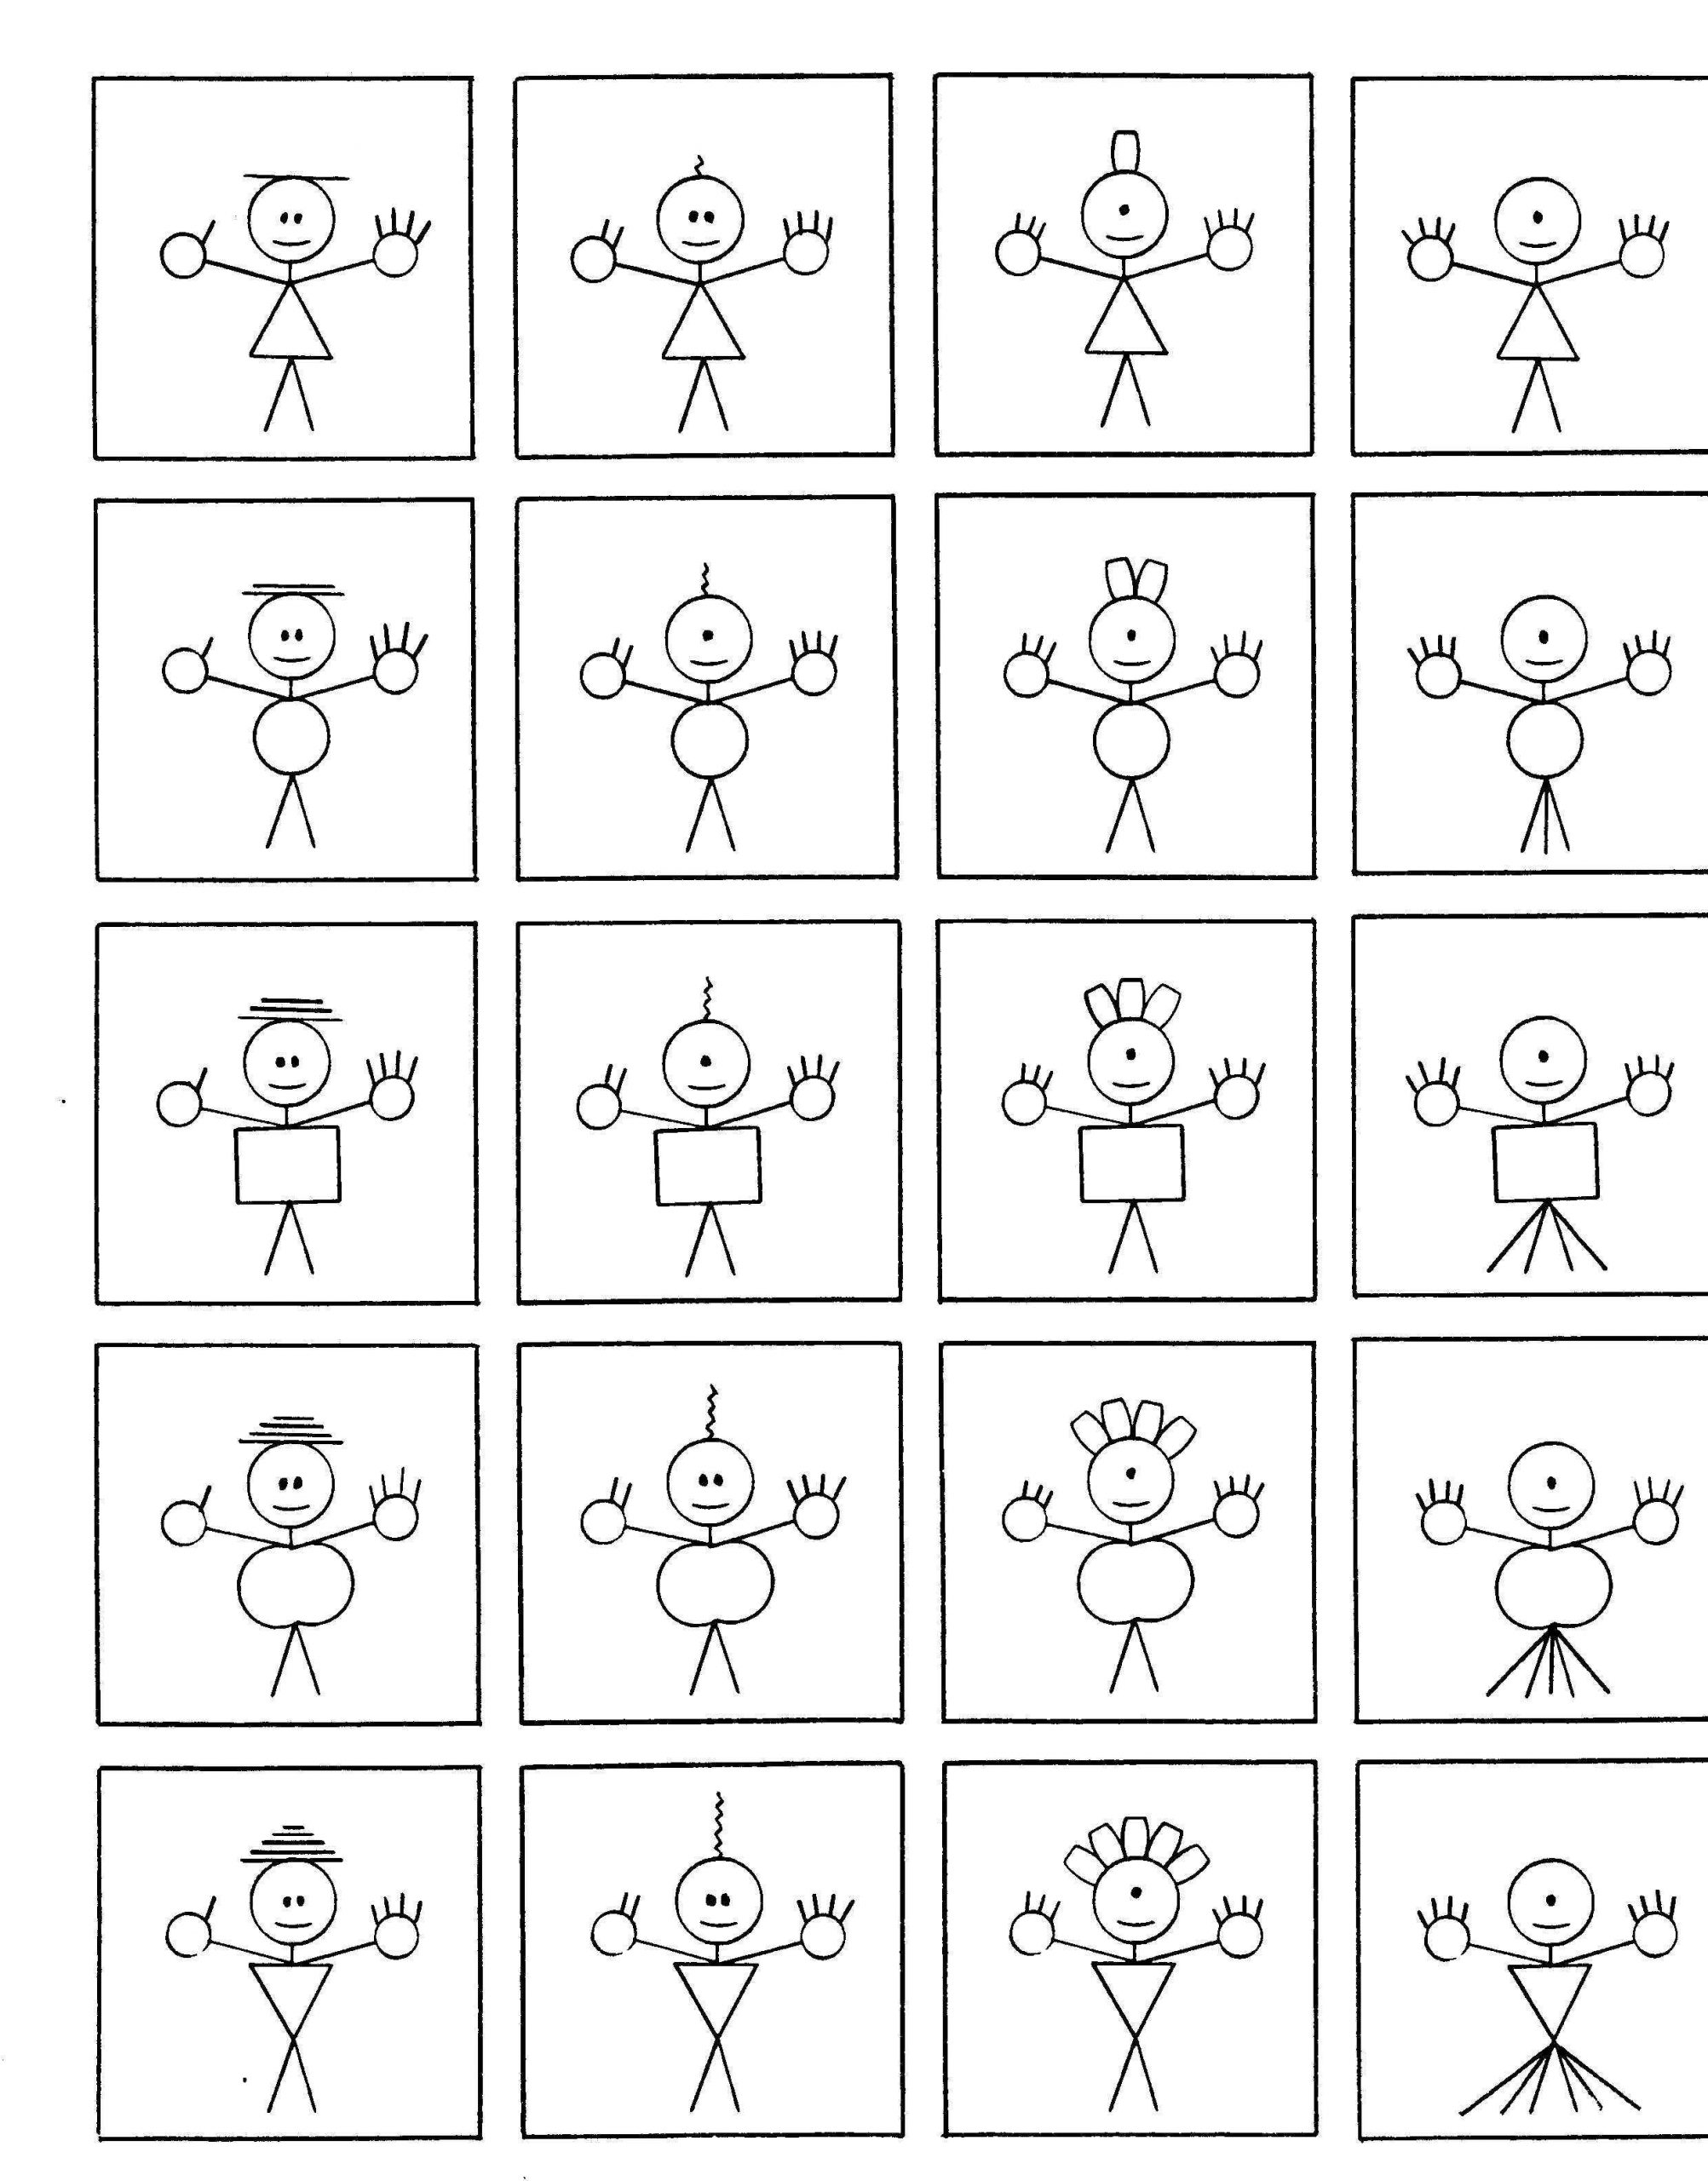 30 Drawing Lewis Structures Worksheet